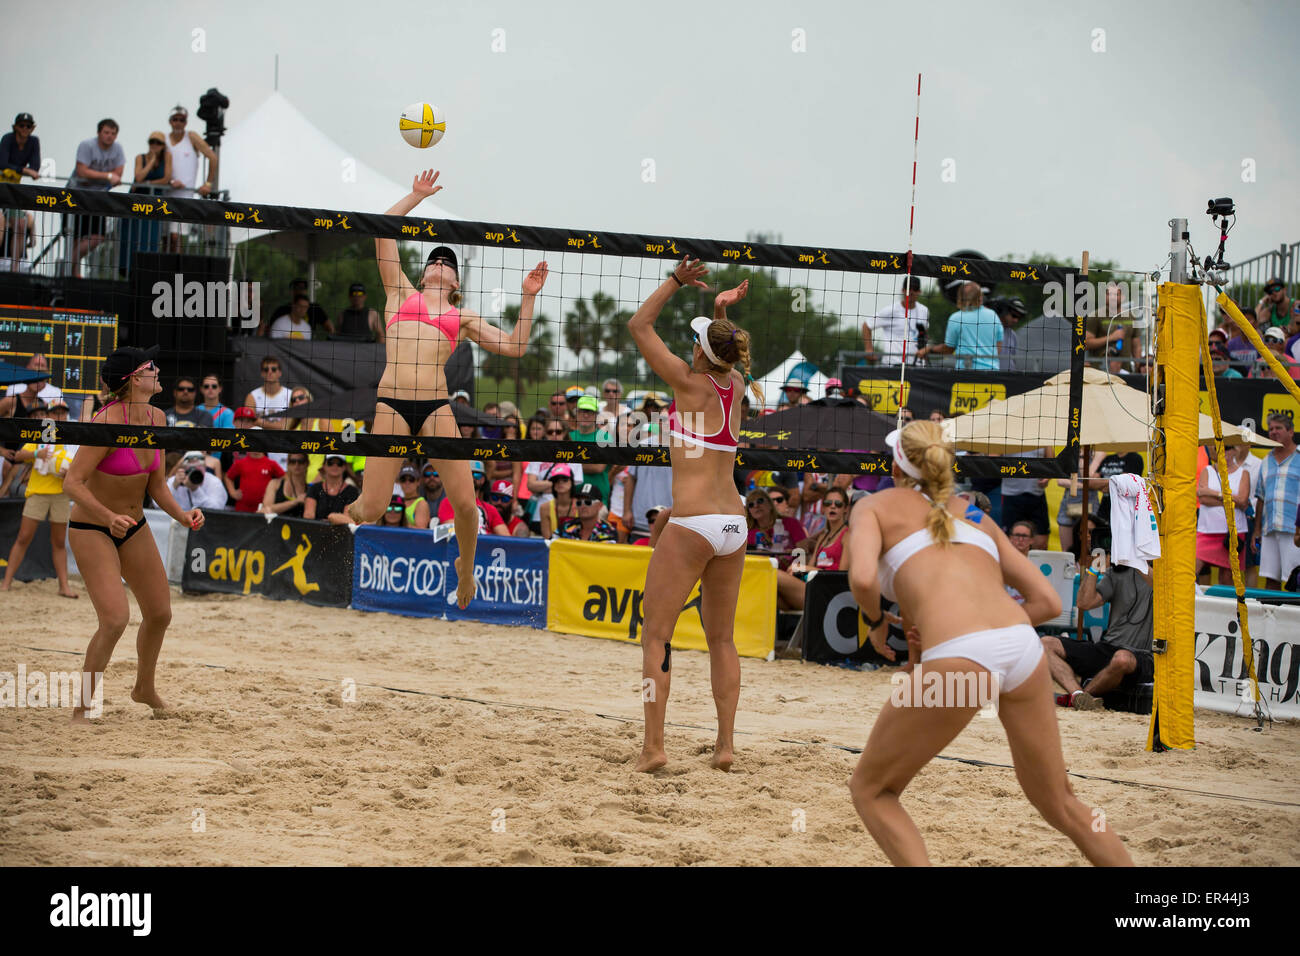 May 24, 2015 - Emily Day serves the ball during the AVP New Orleans Open at Lake Pontchartrain in Kenner, LA. Stephen - Stock Image